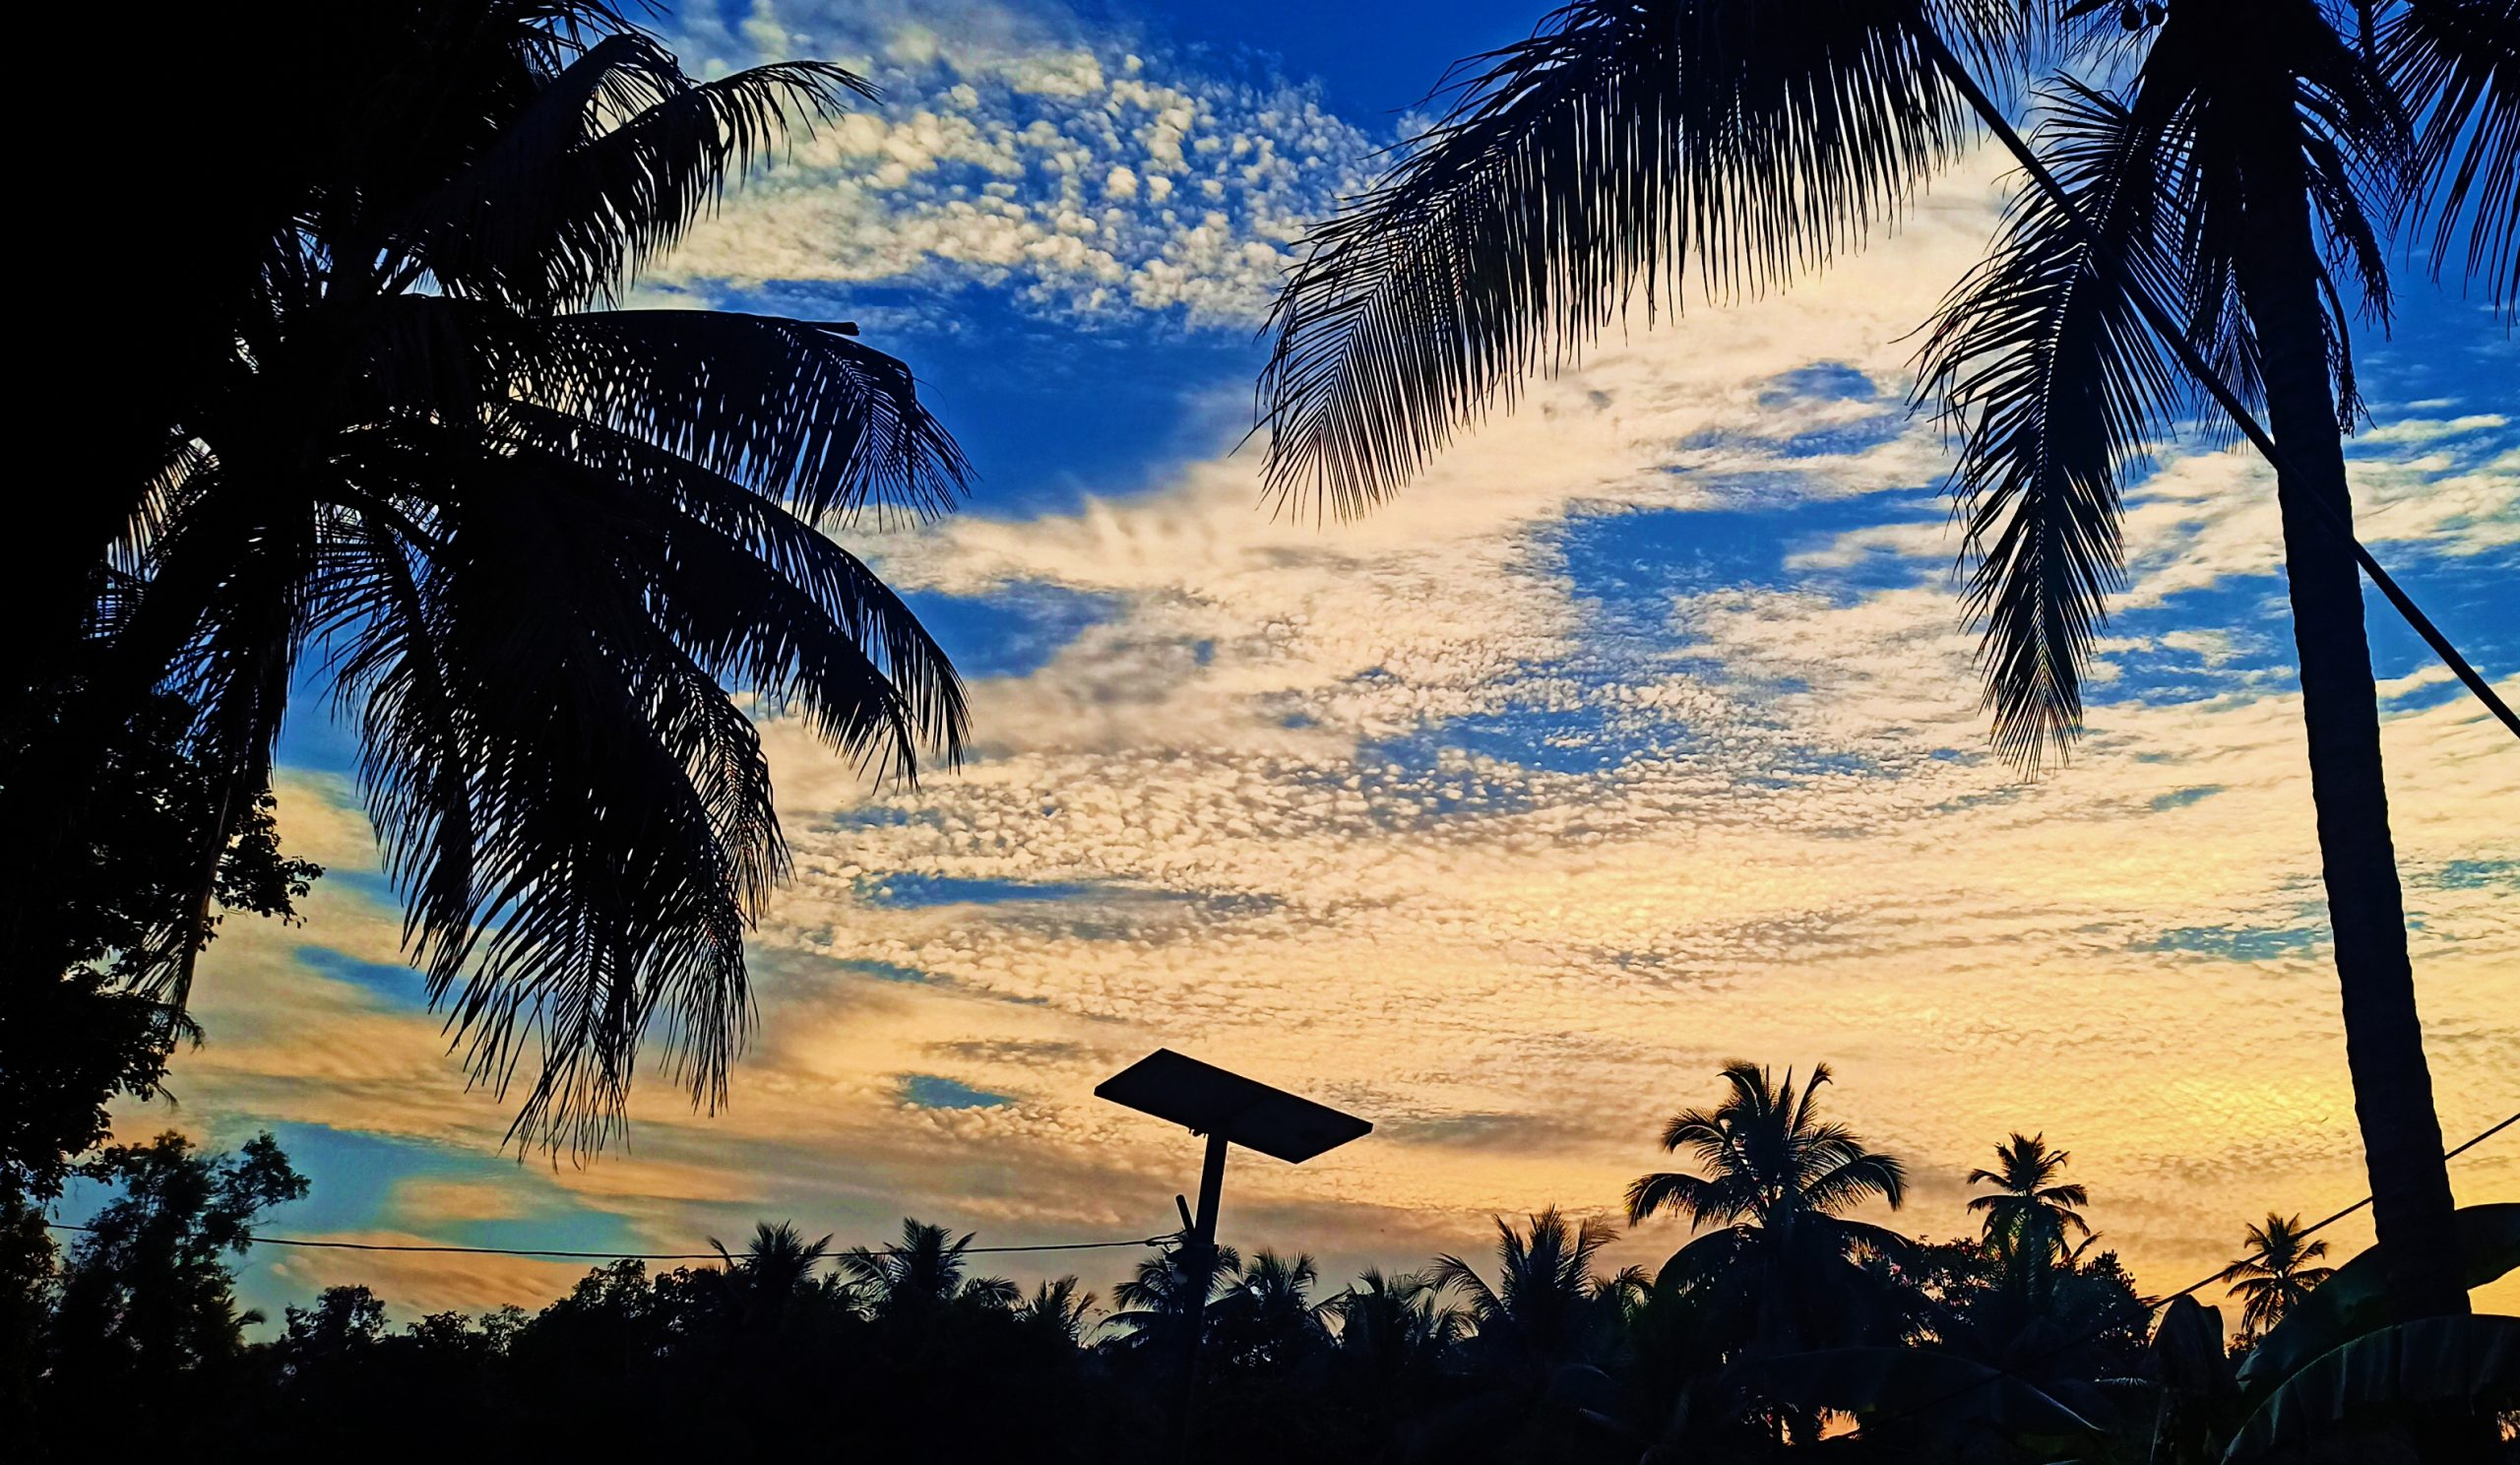 Sky landscape with palm trees